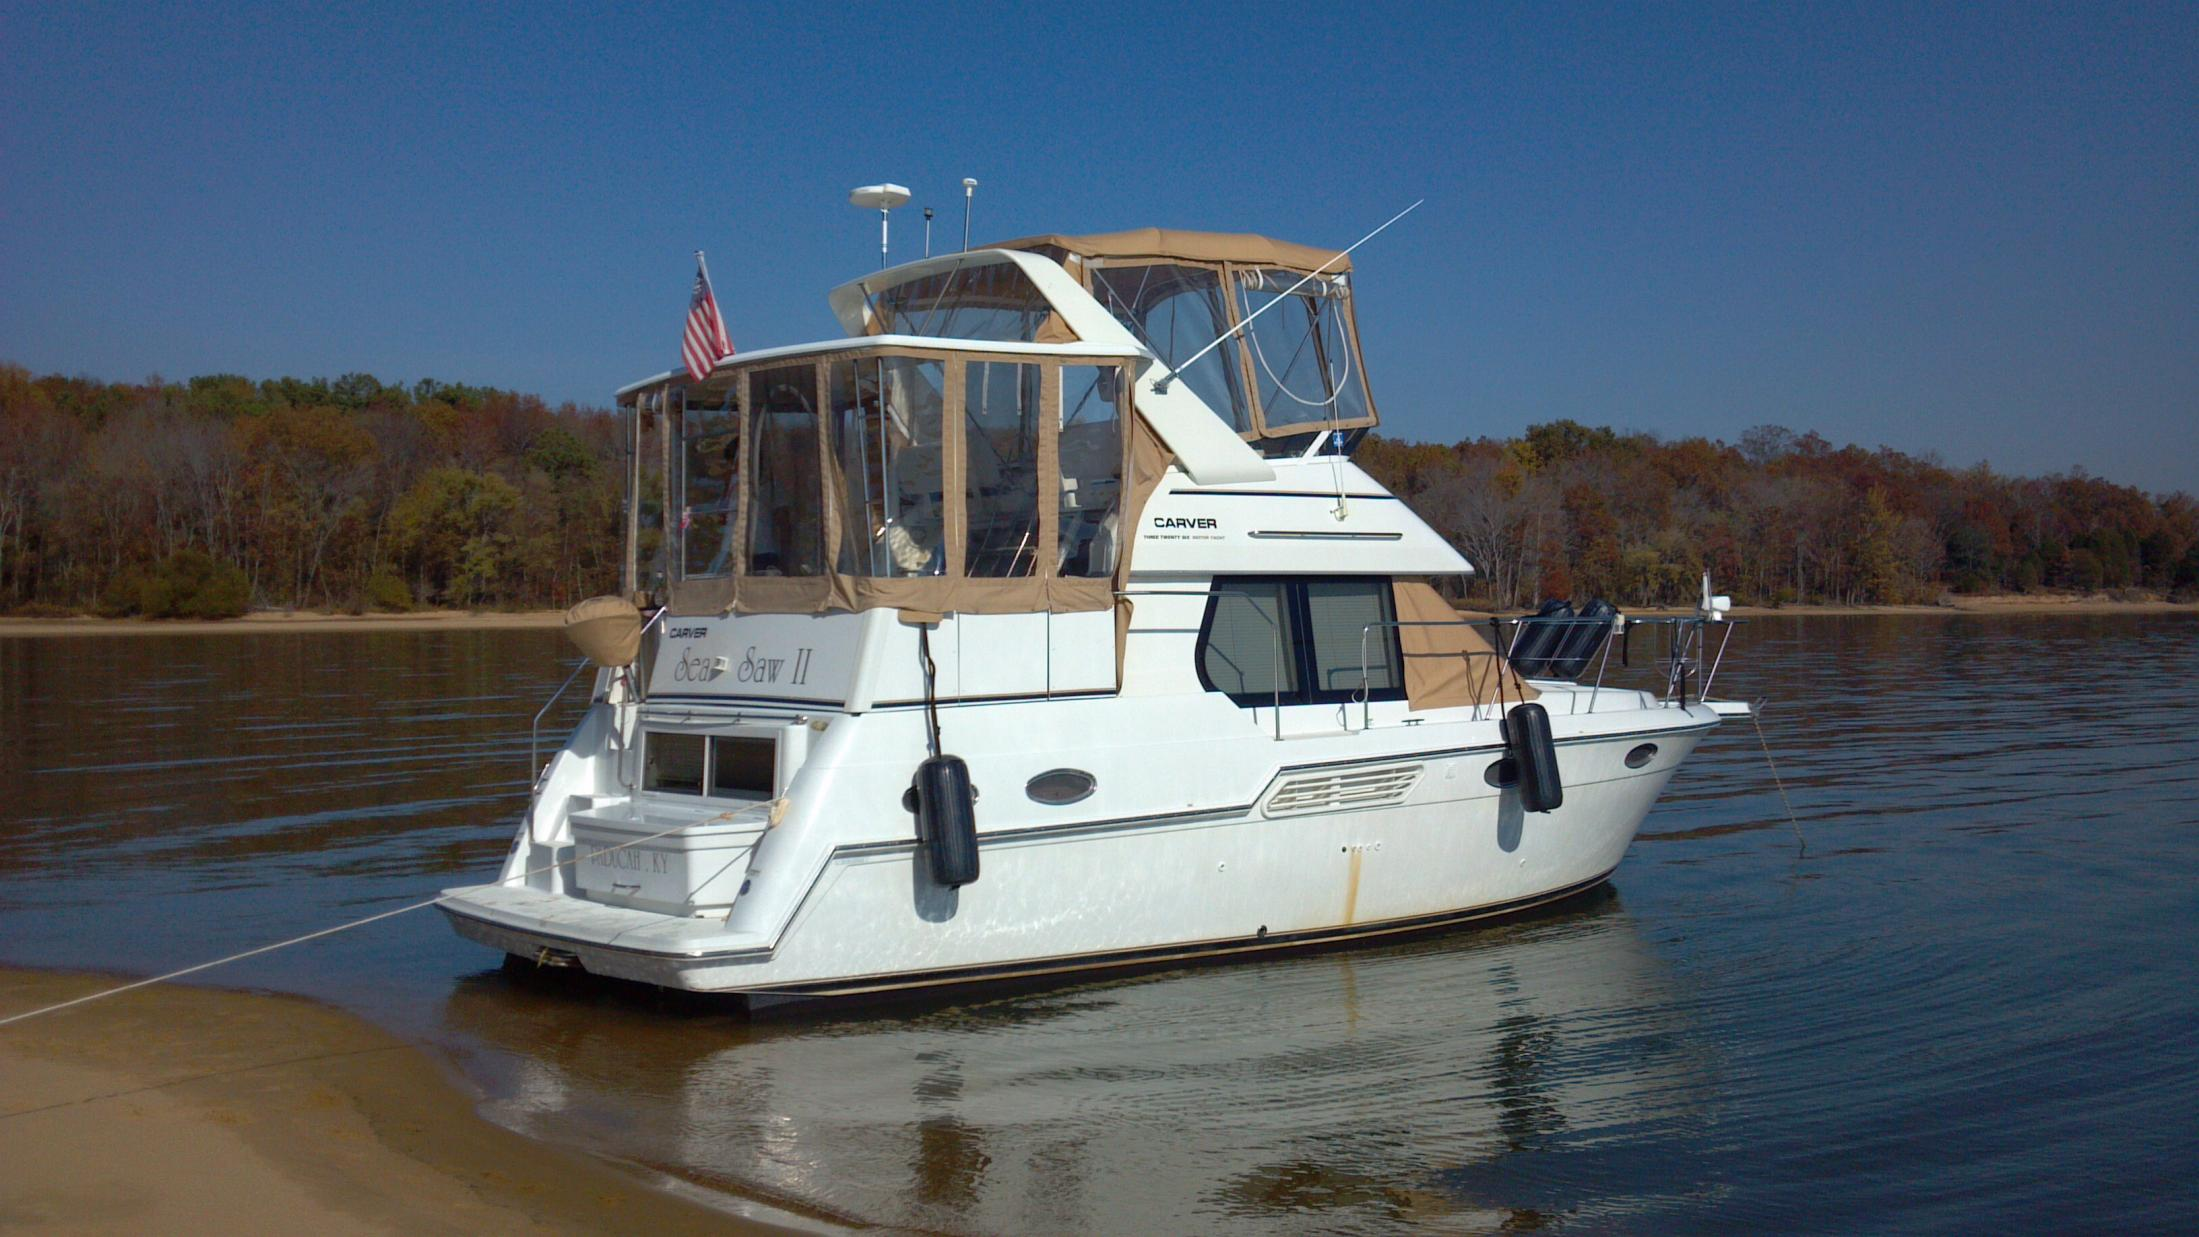 Grand Rivers (KY) United States  City new picture : 1999 Carver 326 Aft Cabin Power Boat For Sale www.yachtworld.com